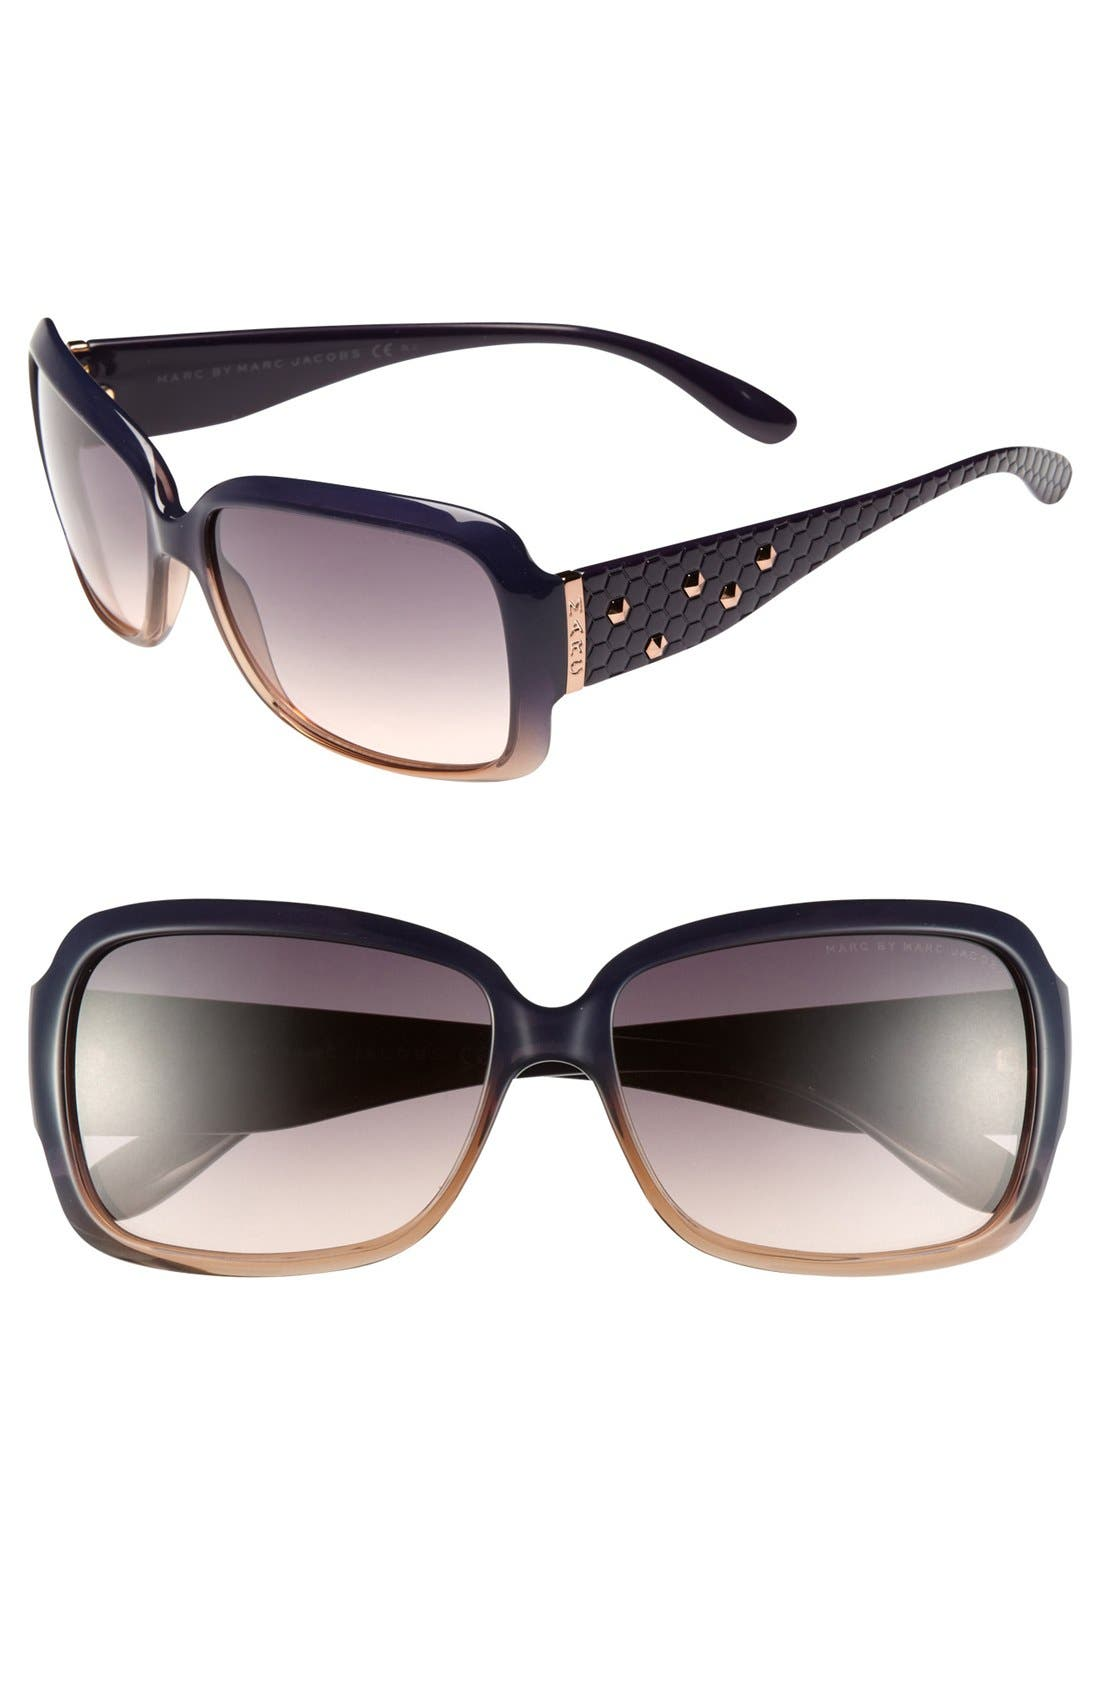 Alternate Image 1 Selected - MARC BY MARC JACOBS Studded 58mm Square Sunglasses